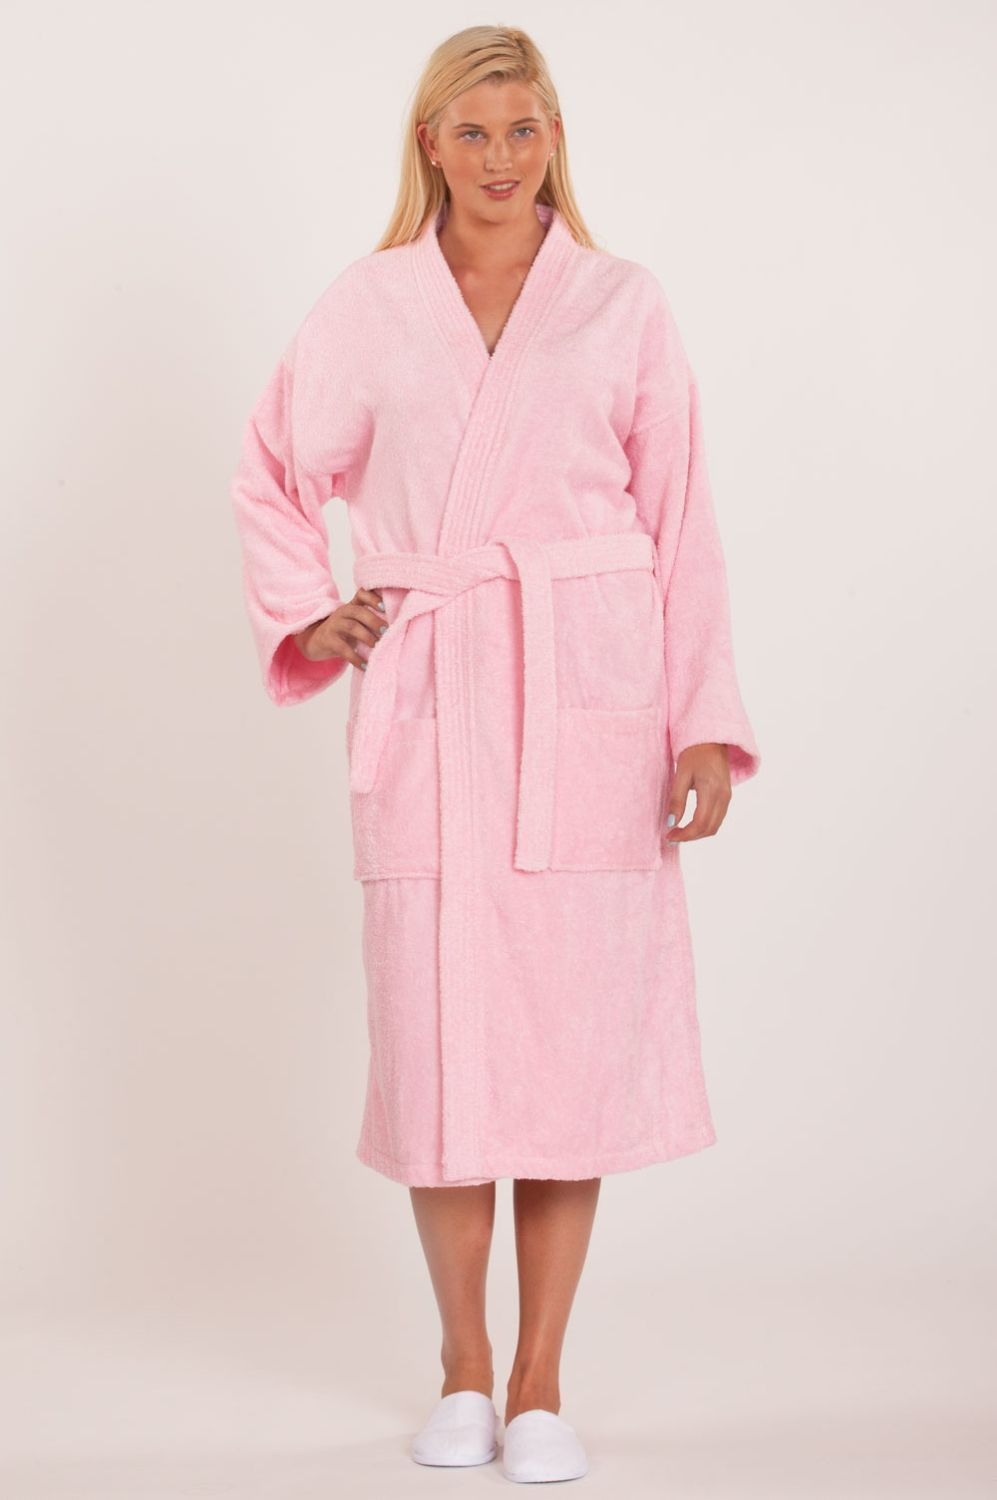 d306bedbeb 100% Turkish Cotton Adult Terry Kimono Robe - Pink - Adult - One Size